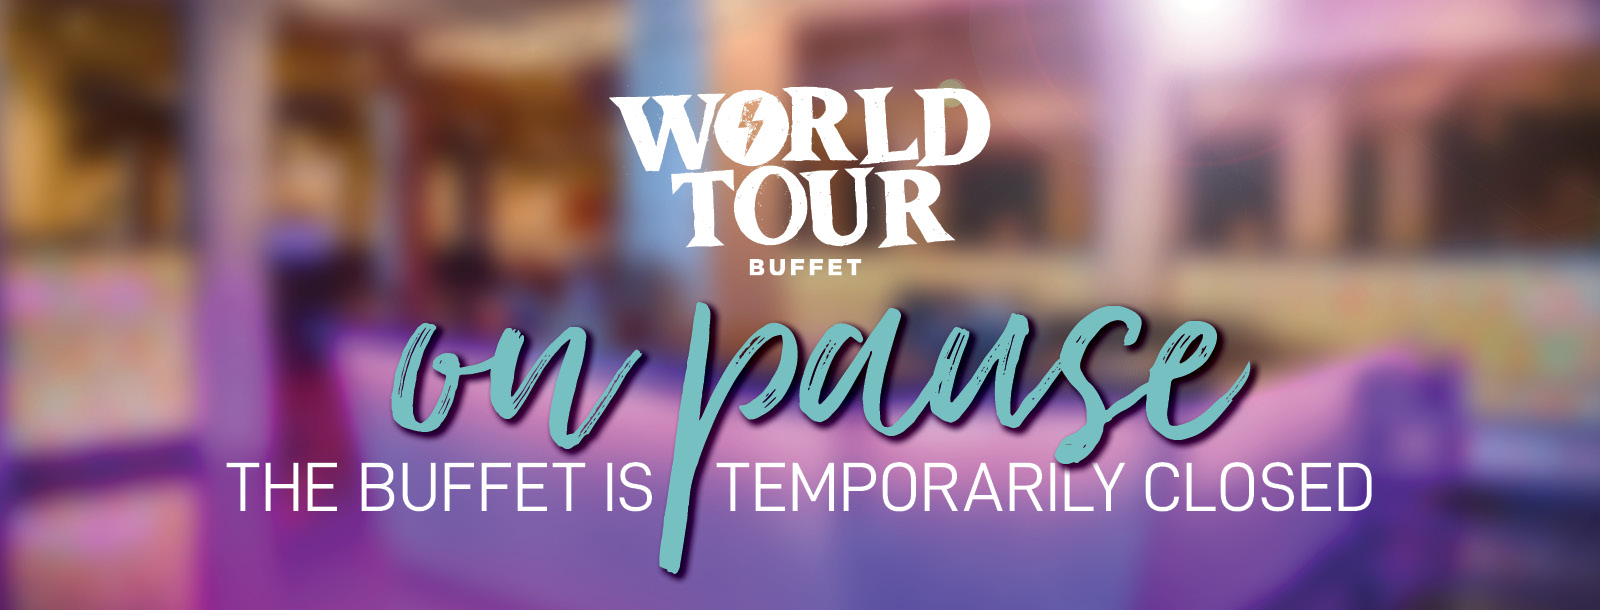 world tour buffet temporarily closed